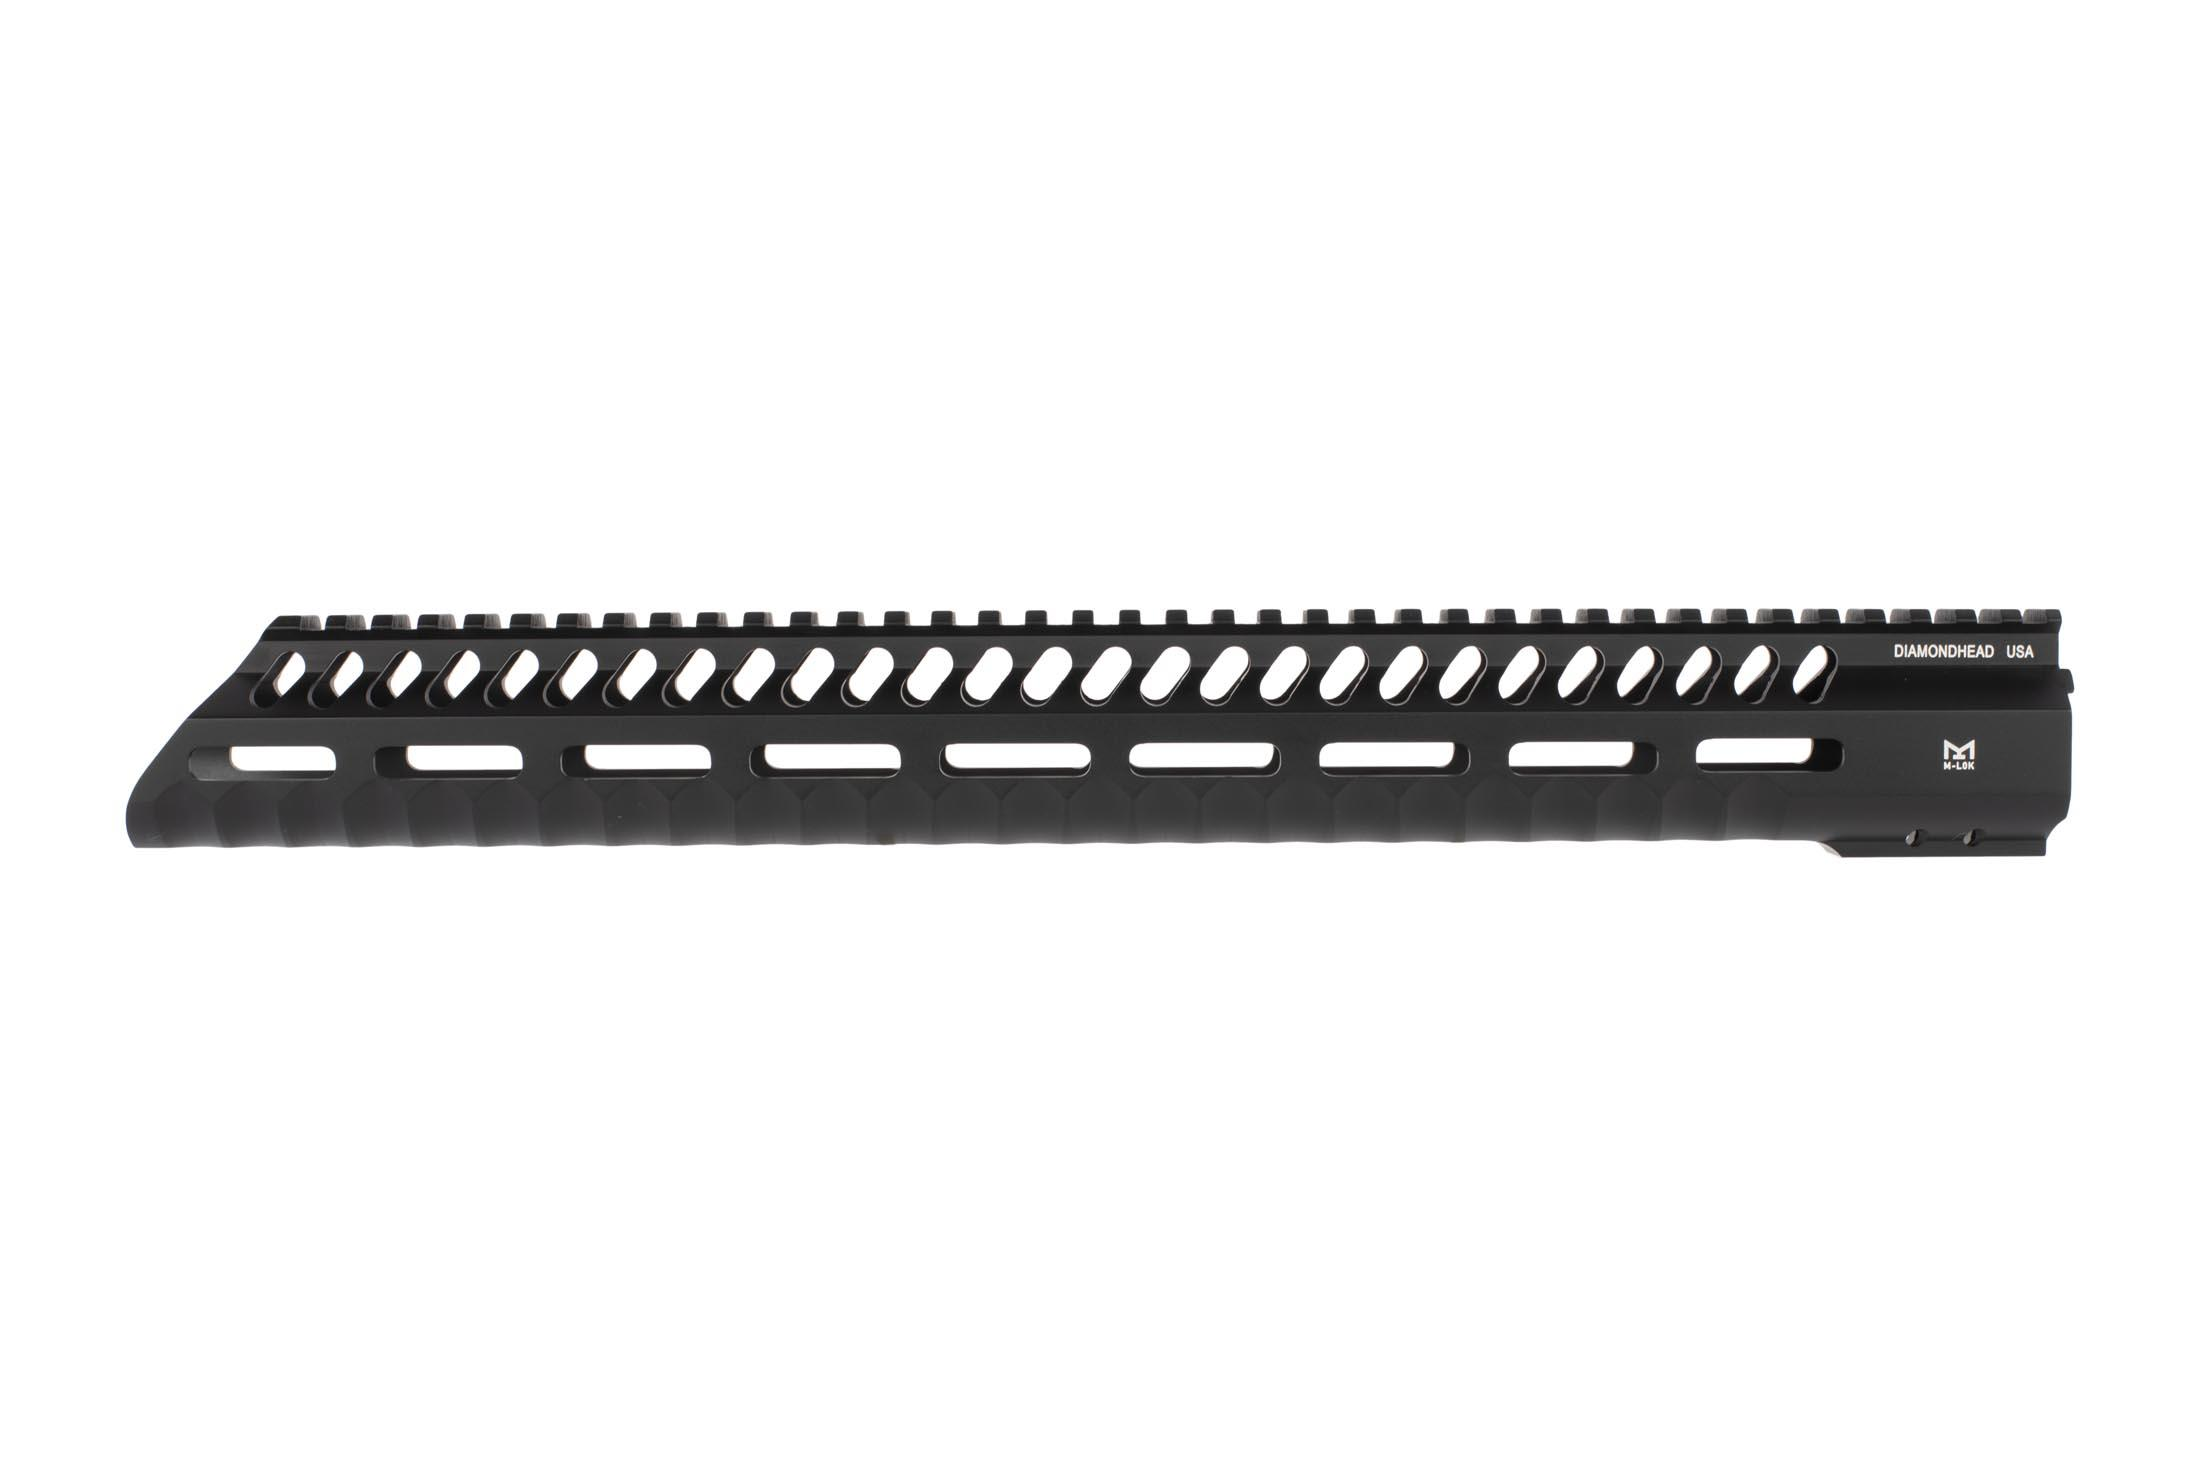 Diamondhead USA 3rd series 15in VRS-T M-LOK AR 15 freefloat handguard has a sloped nose with fun aesthetics